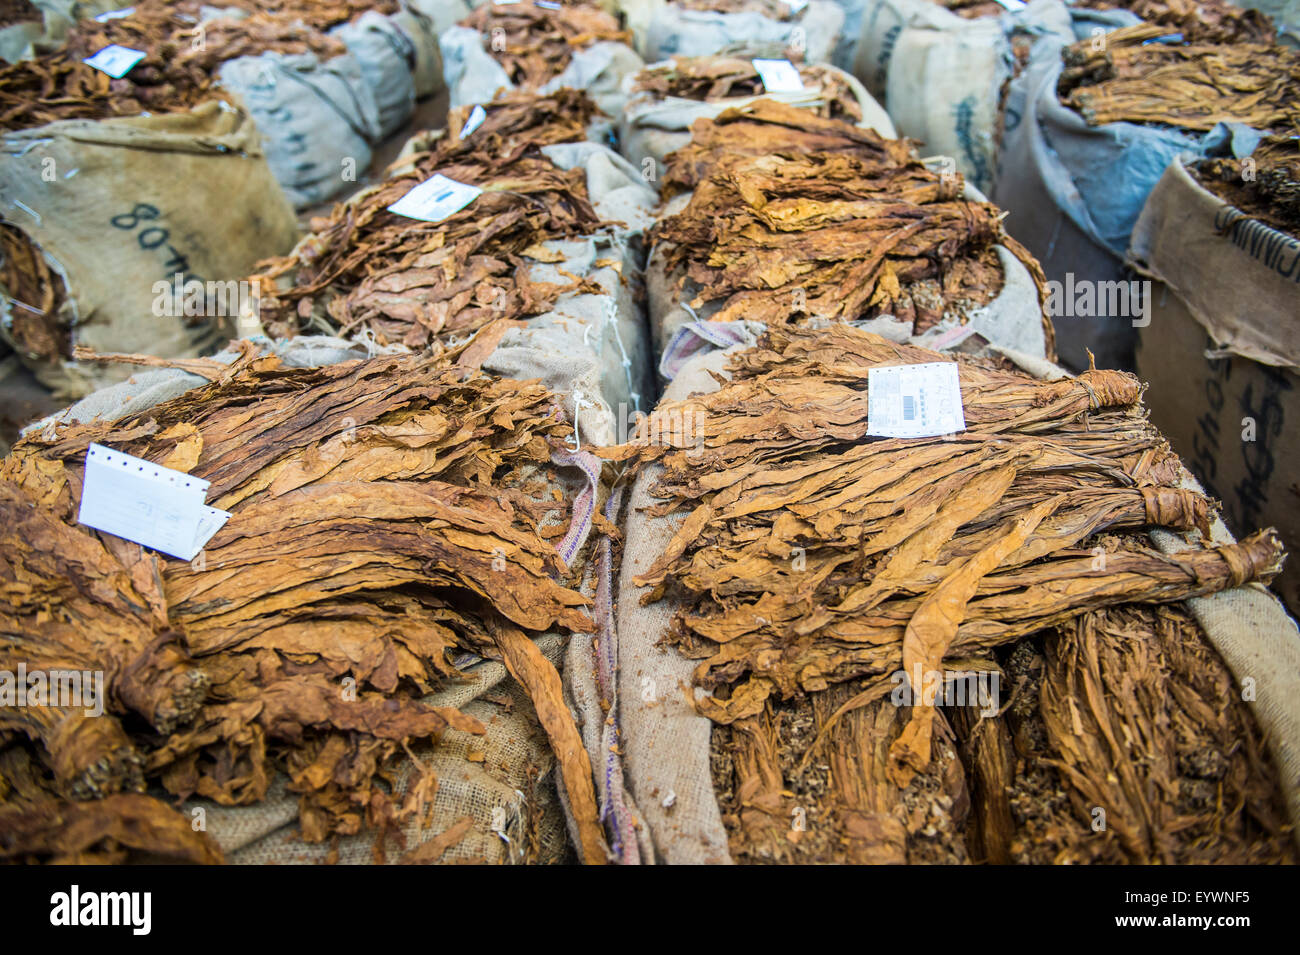 Piles of dry tobacco, Tobacco auction in Lilongwe, Malawi, Africa - Stock Image